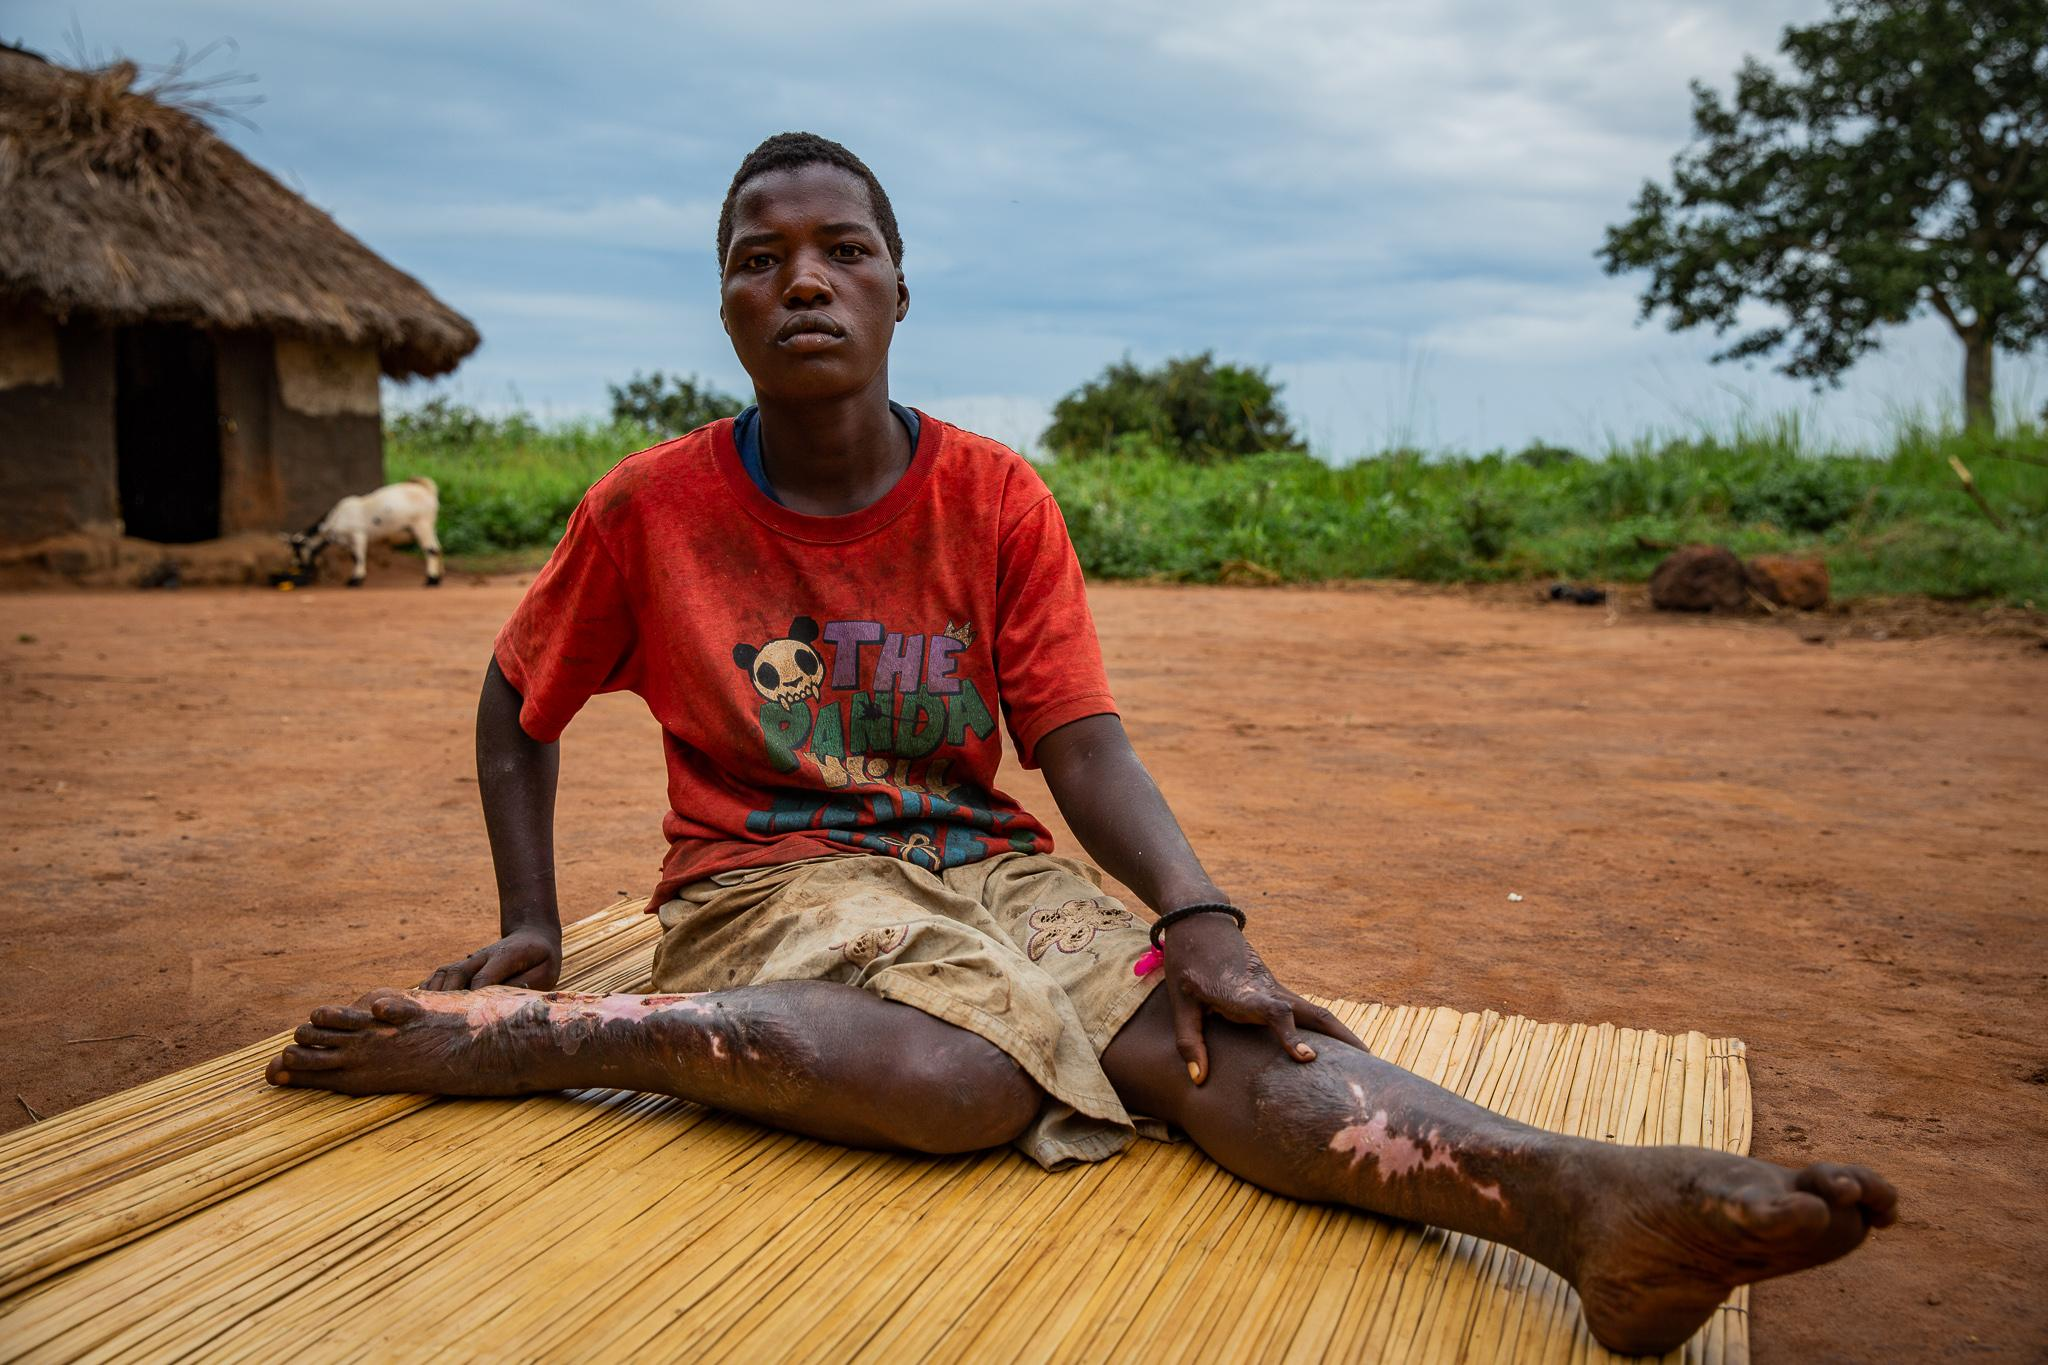 Lakot Milly, 19, was diagnosed with Nodding Syndrome in 2008 in Awere IDP camp. In 2016, she fell in fire while having seizures and she has since been suffering severe wounds.